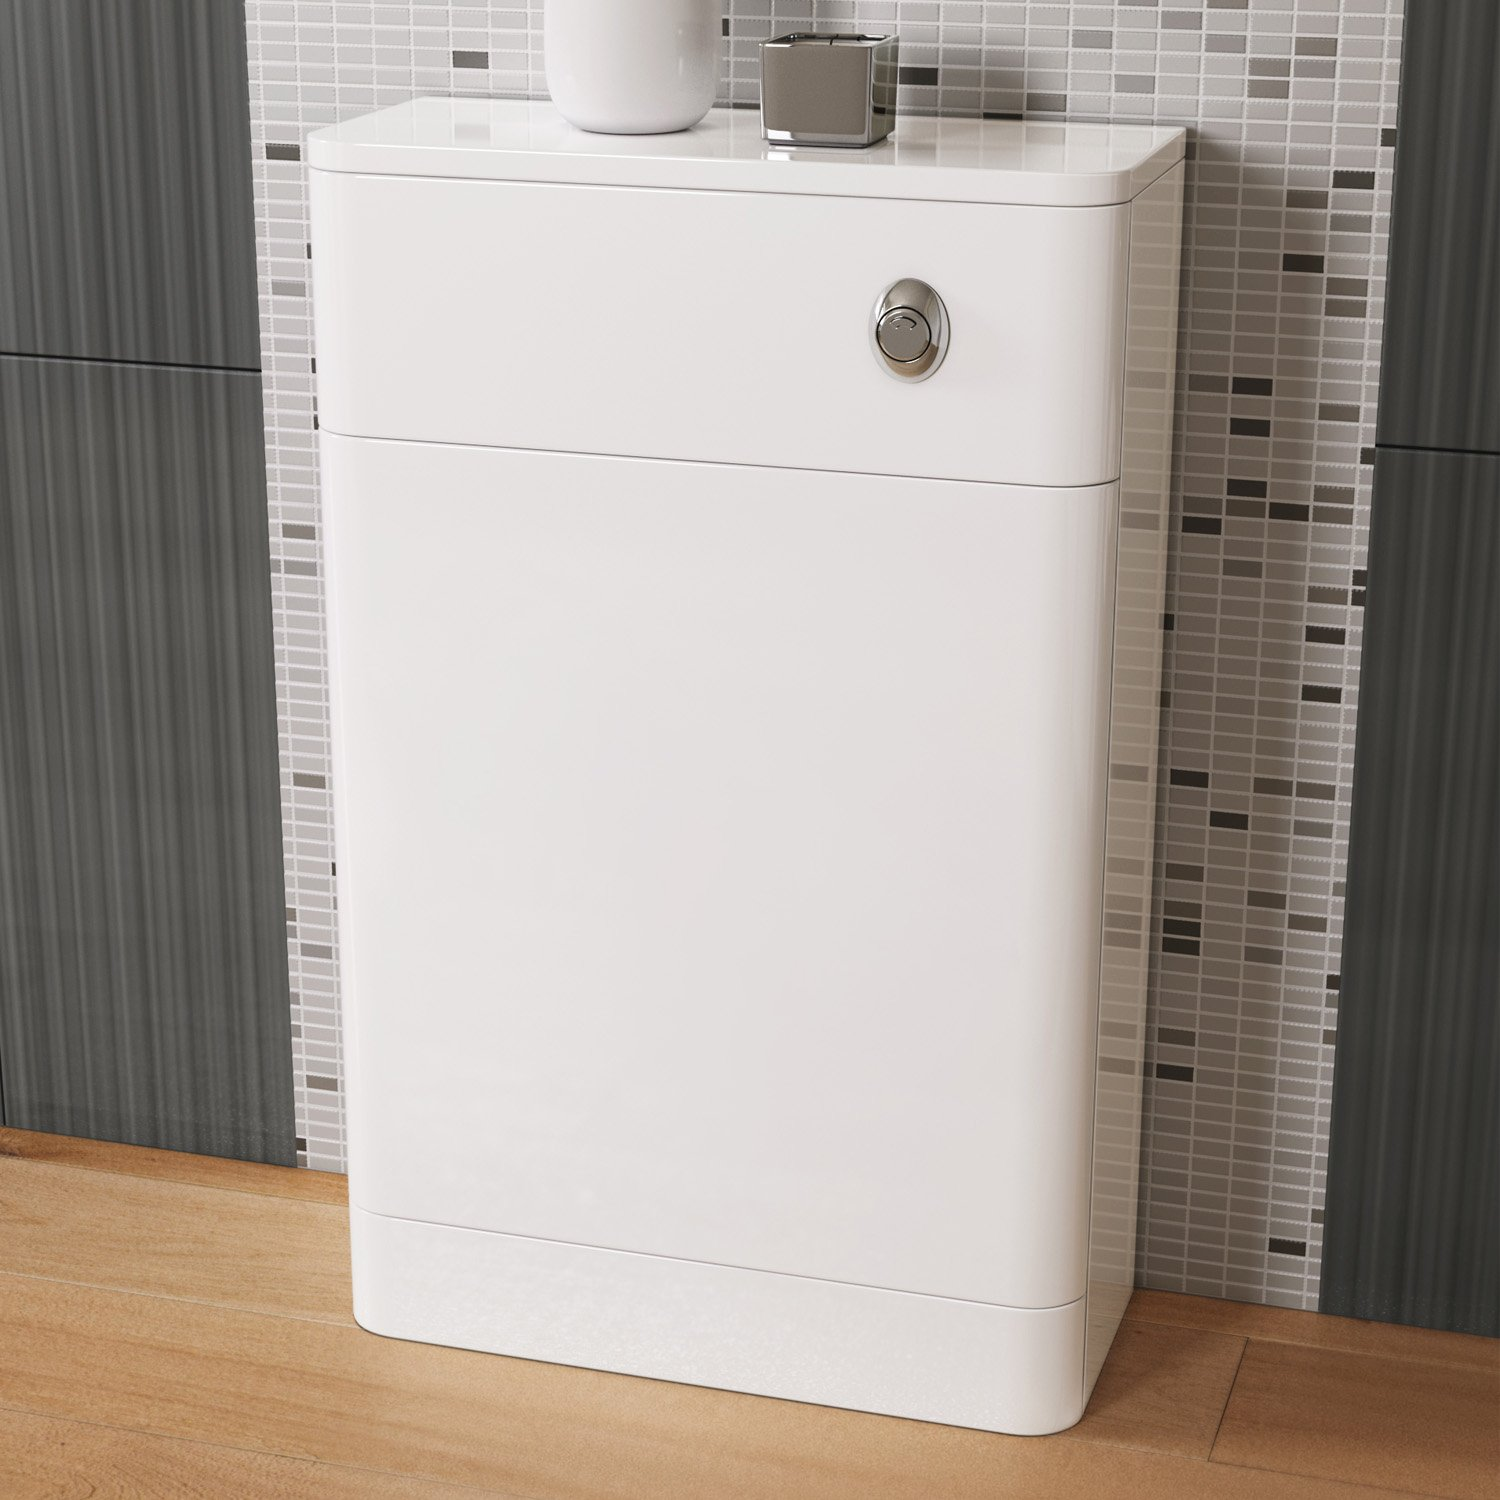 300 x 200 mm White Back To Wall Toilet Slim Concealed Cistern Unit Bathroom Furniture iBathUK